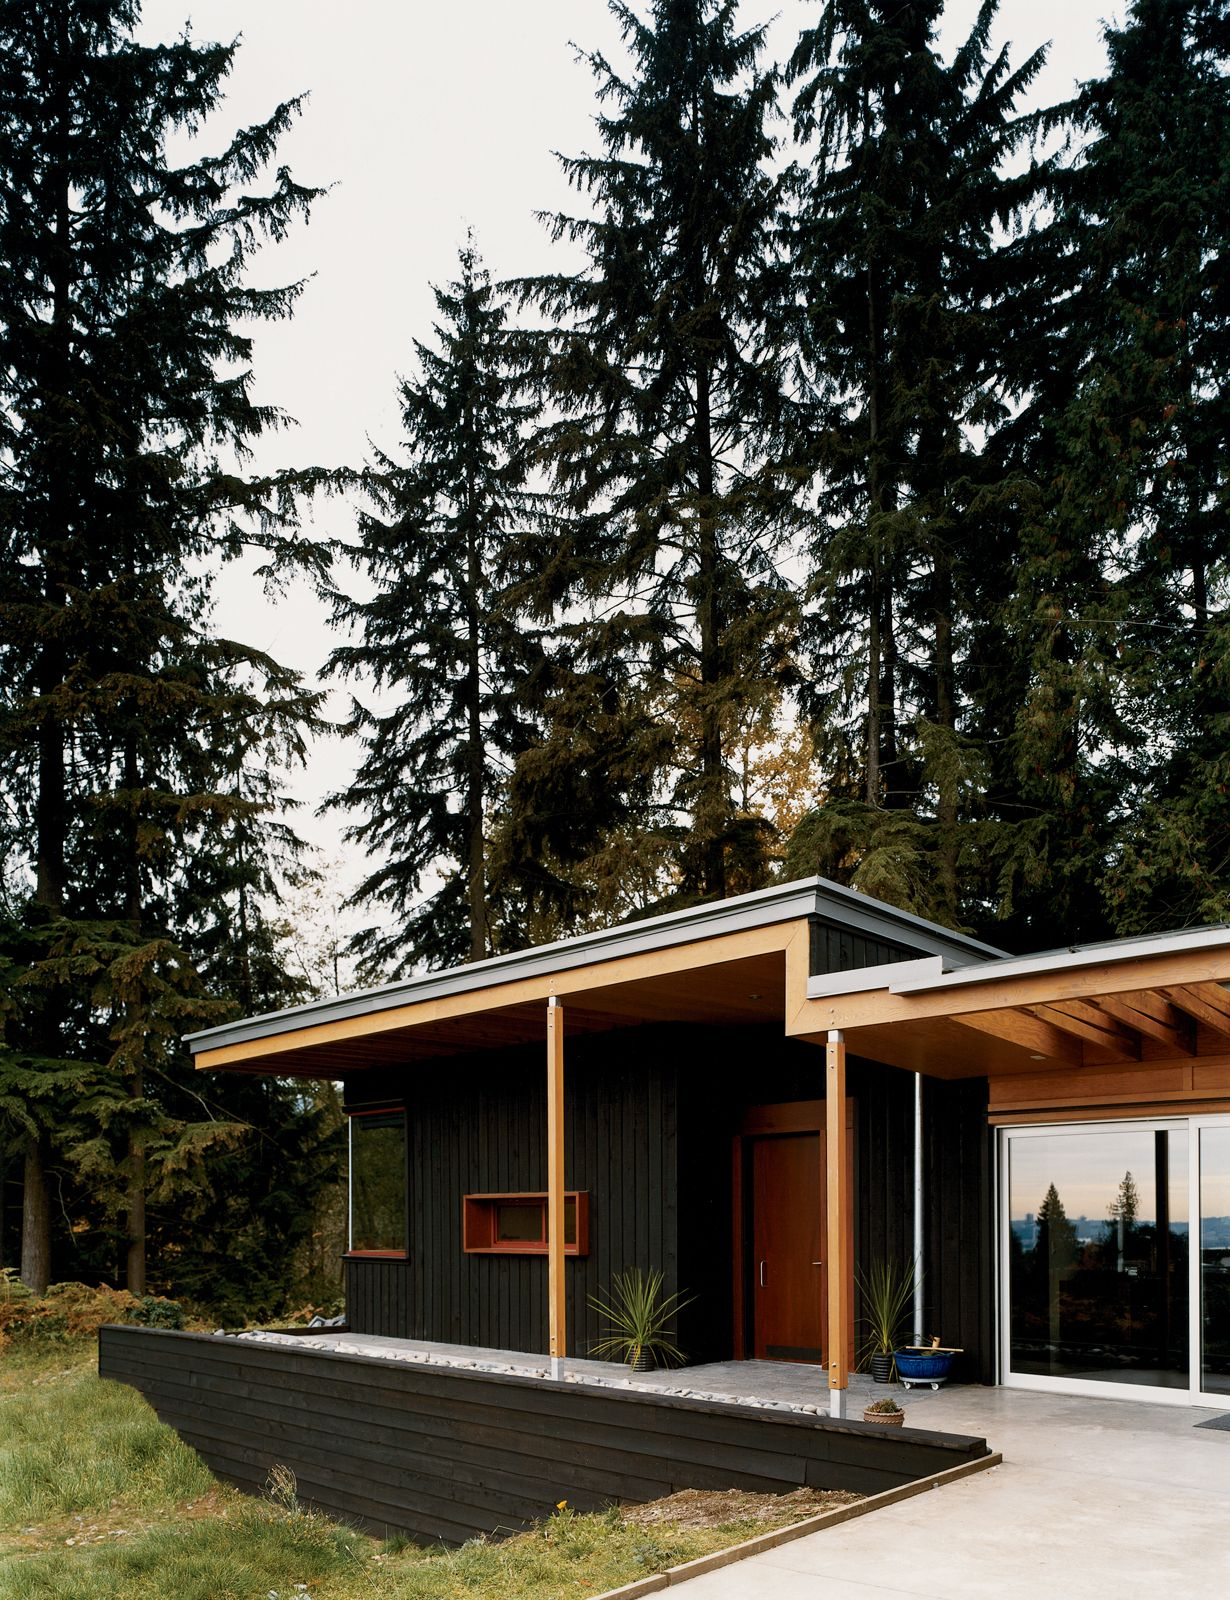 Exterior House Designs Exterior Modern With Concrete Patio Flat Roof: Flat Roof House Designs, Flat Roof House, Architecture